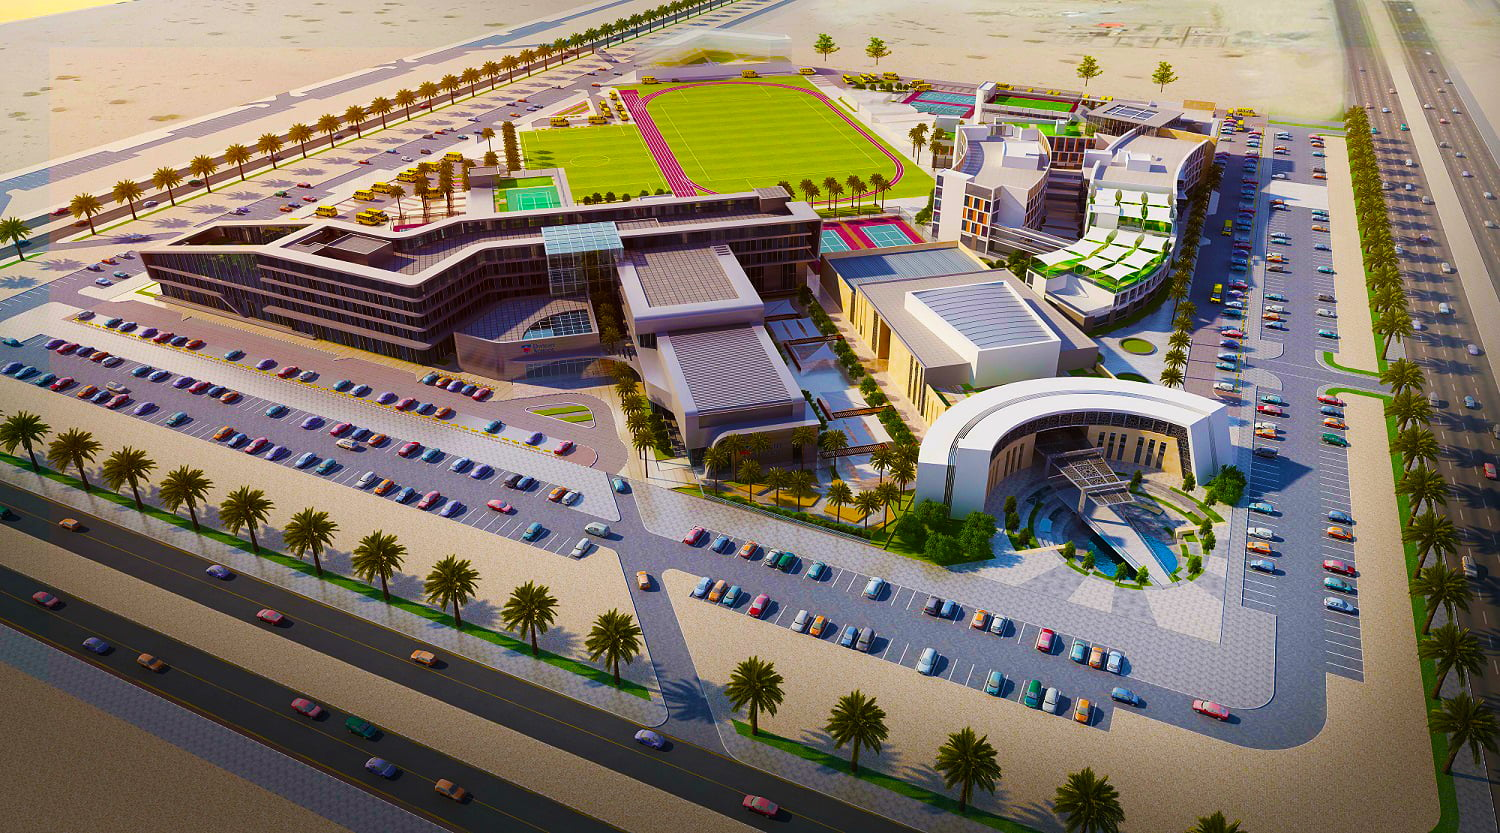 Architectural image of the new Dwight School Dubai which will share a super campus with the new Brighton College Dubai also opening in September 2018